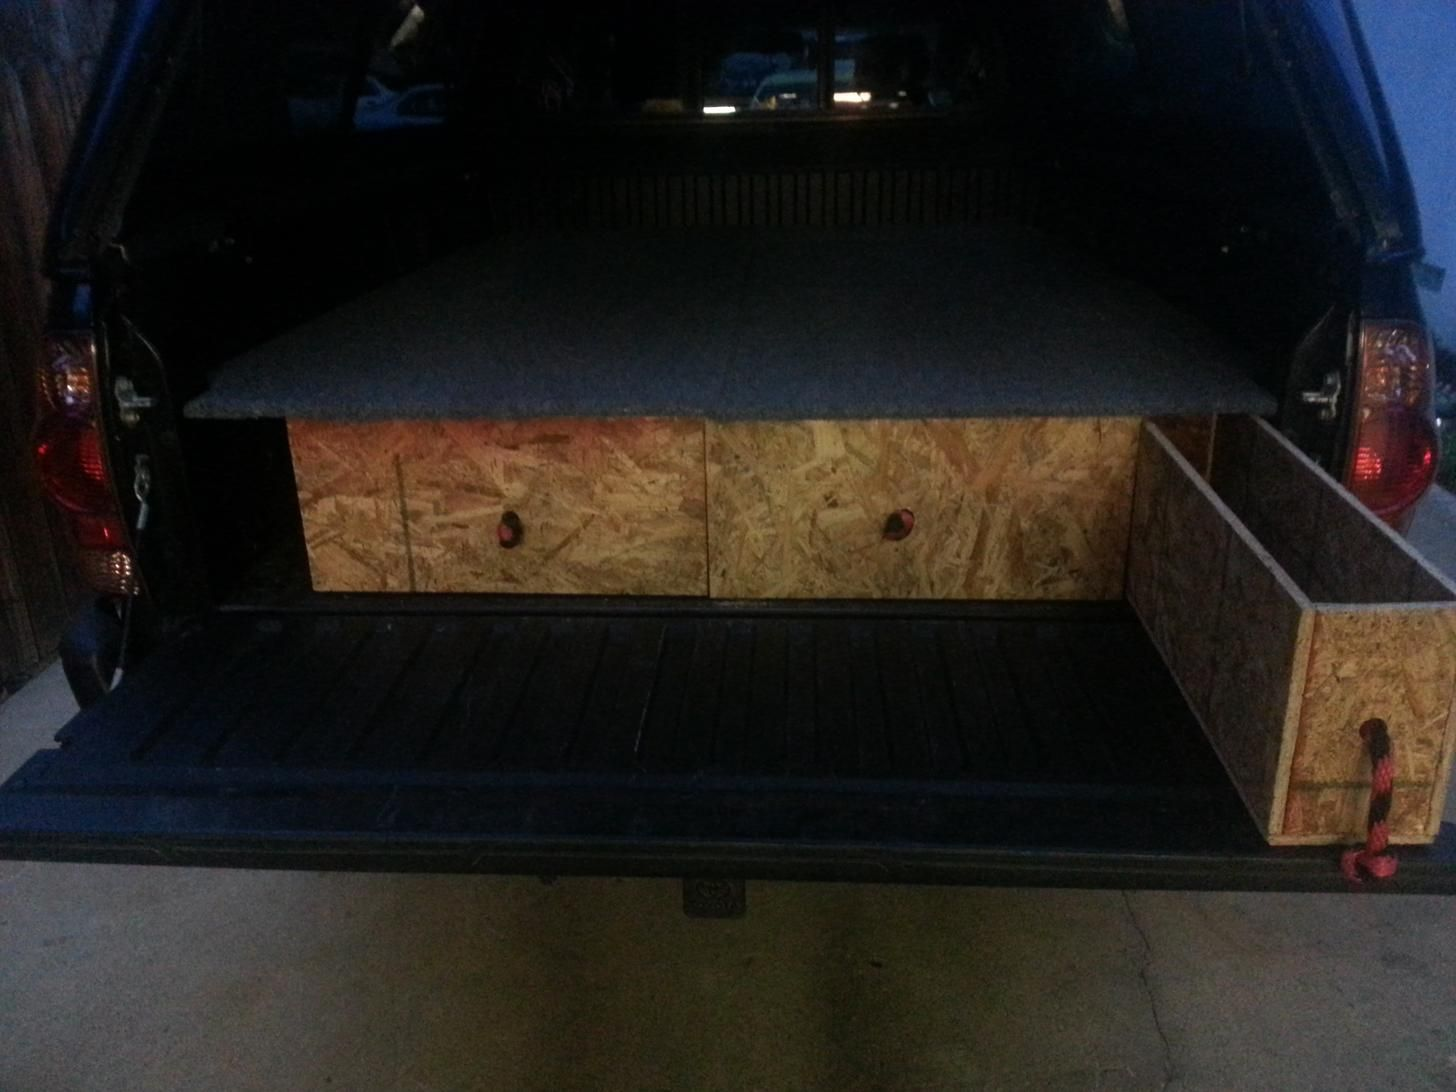 Truck Bed RV Phase I in 2020 Truck bed, Truck bed